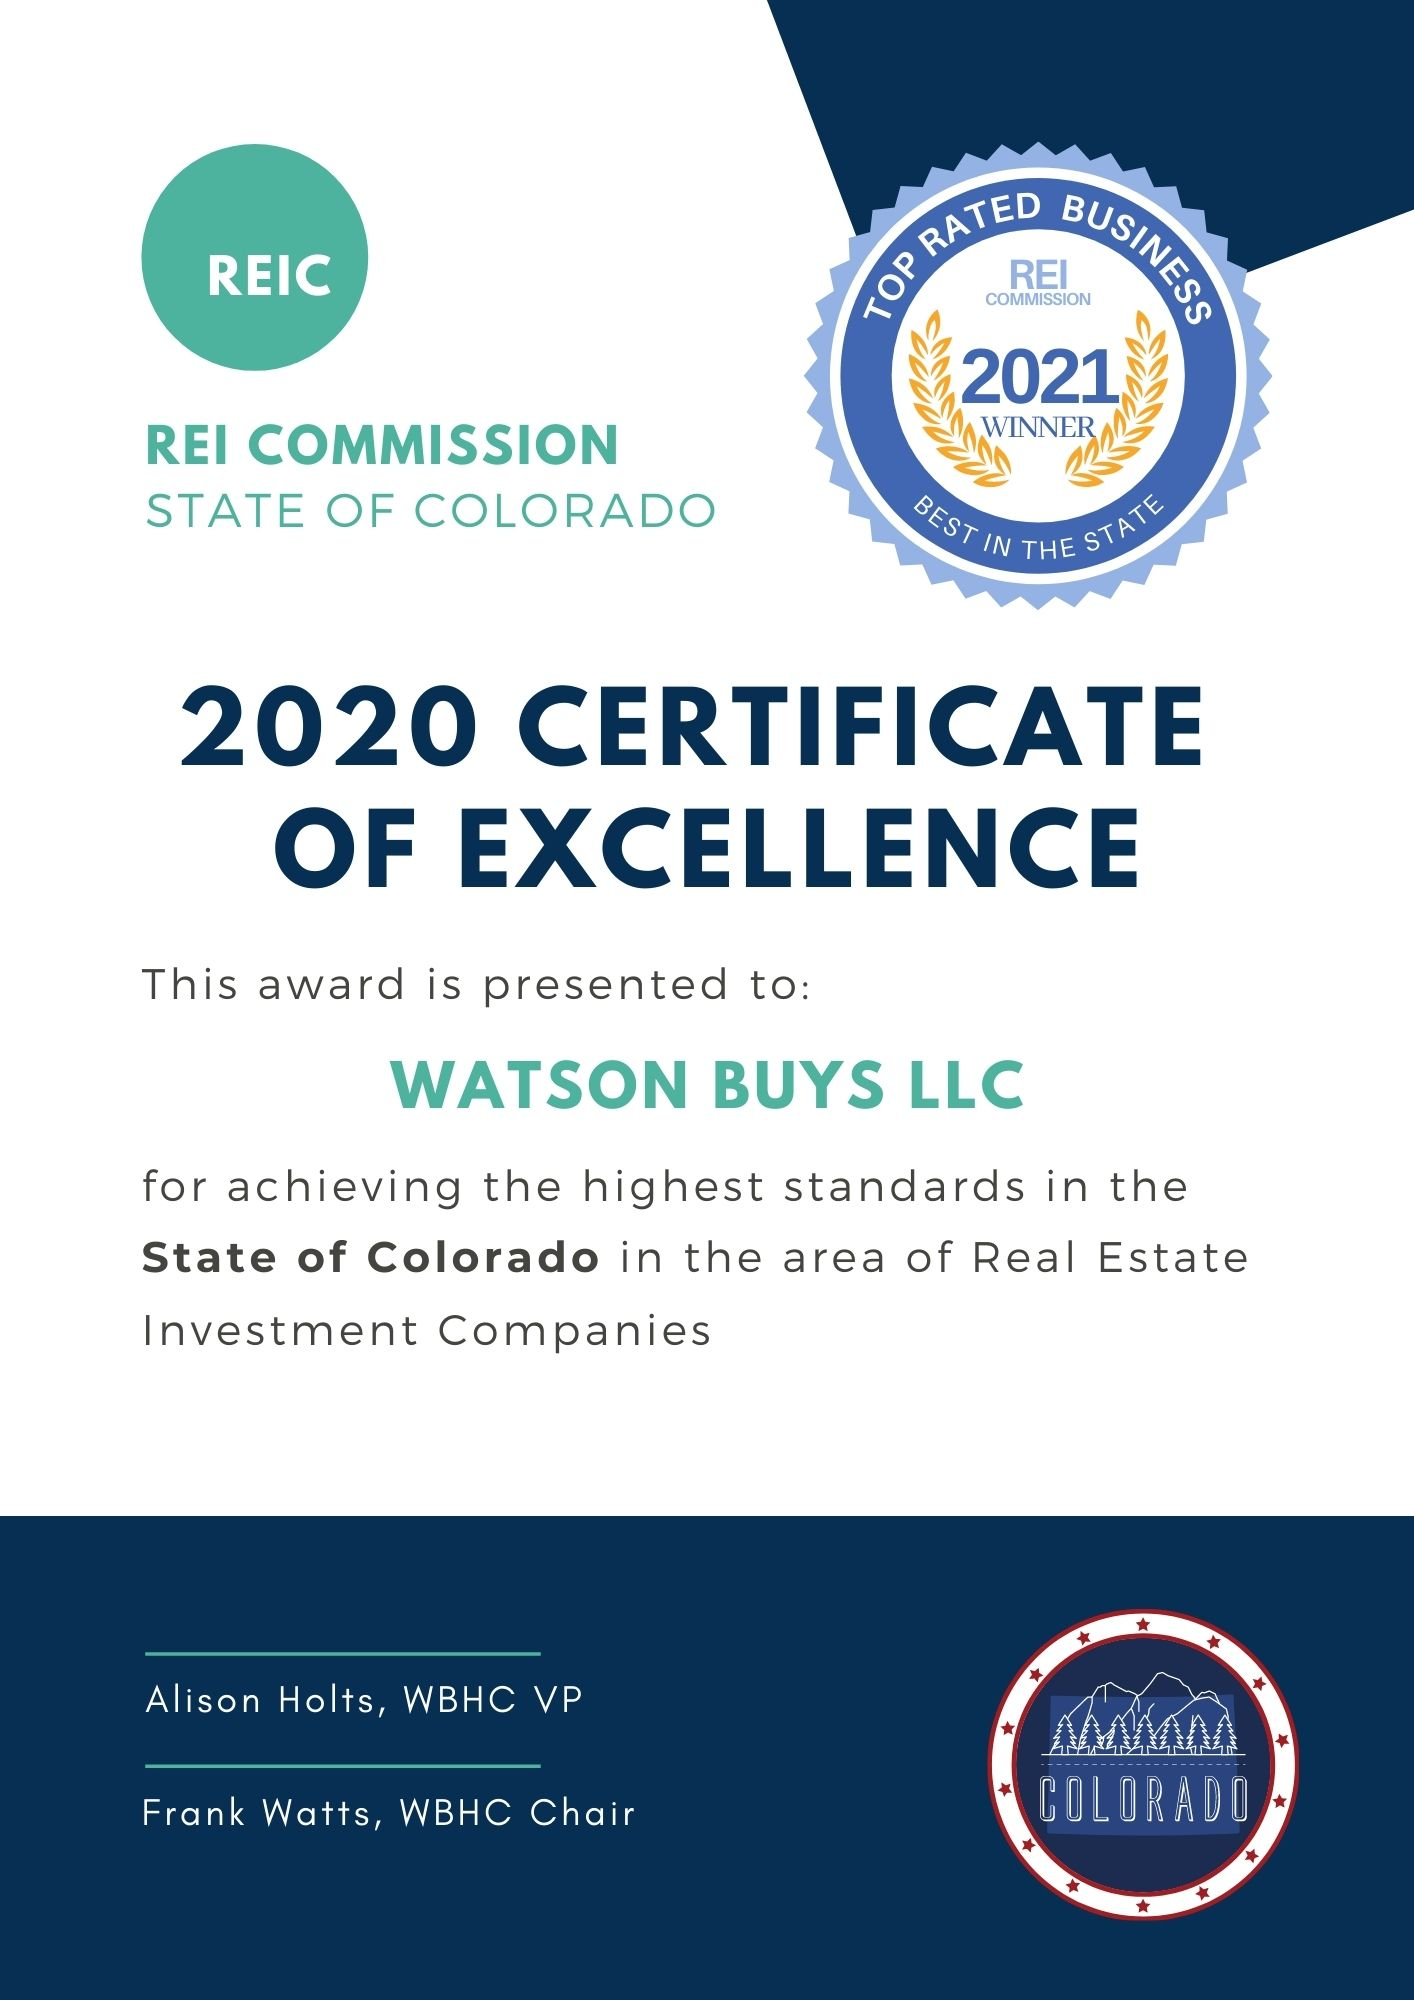 2020-Award-for-Excellence-in-Real-Estate-Investing-Colorado